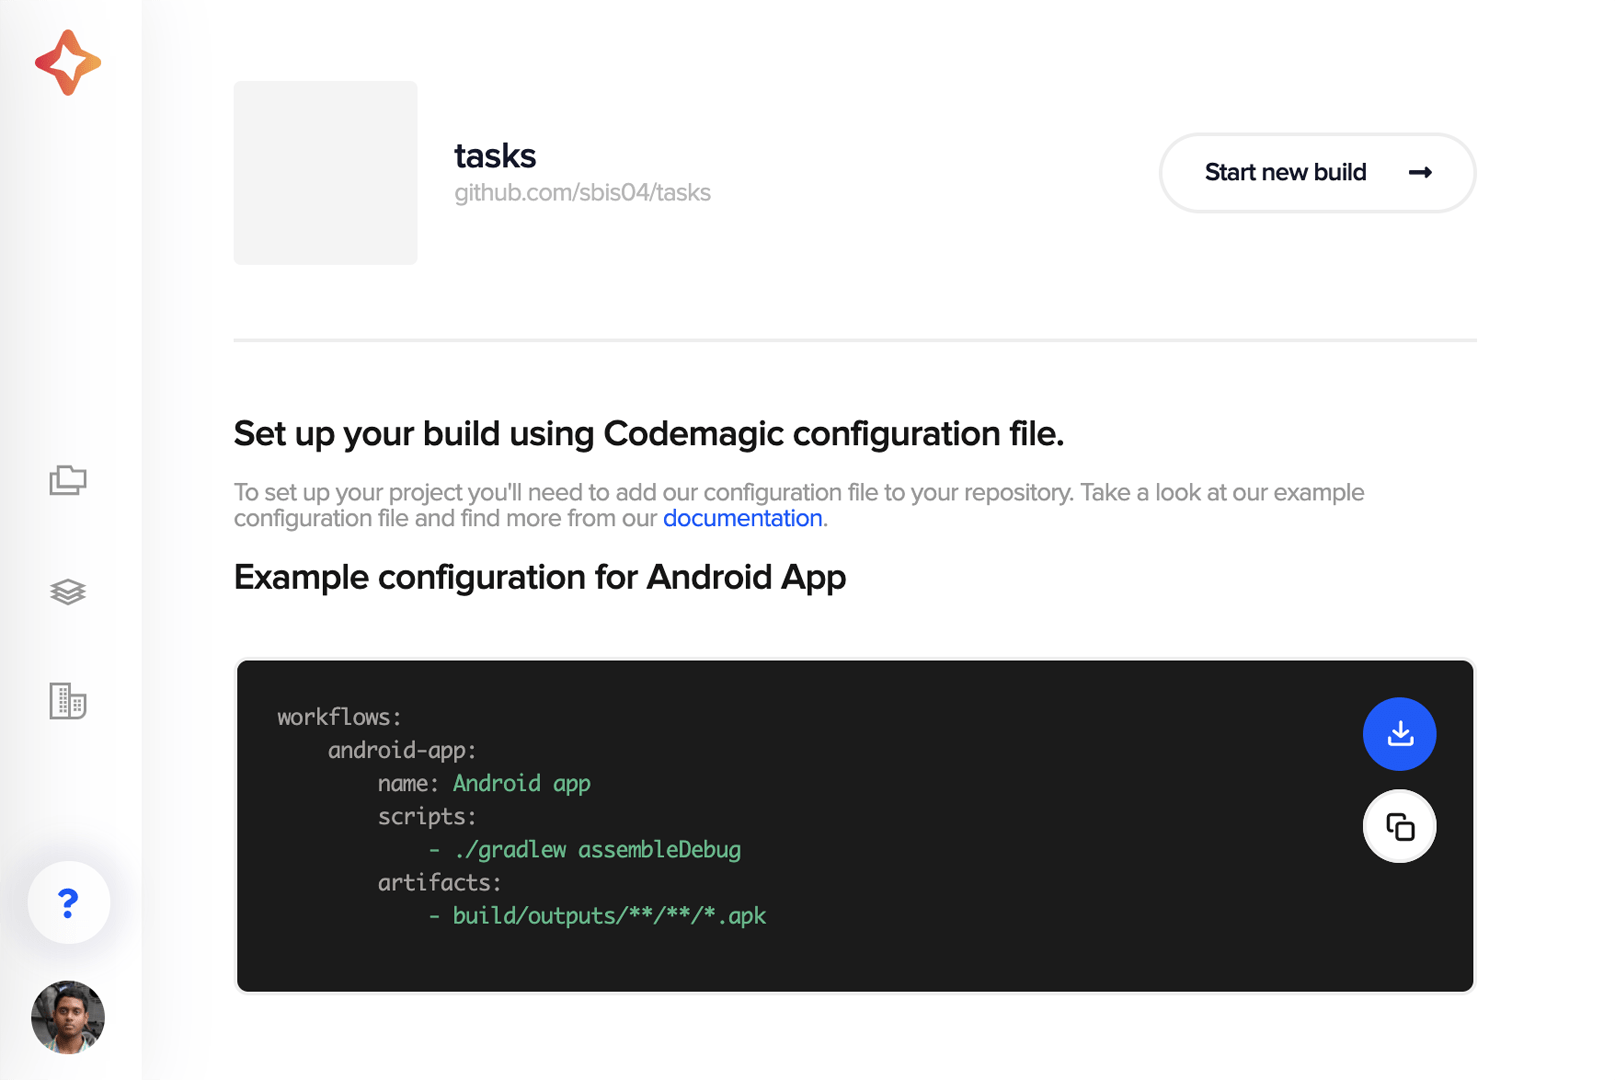 Download the YAML template for native Android